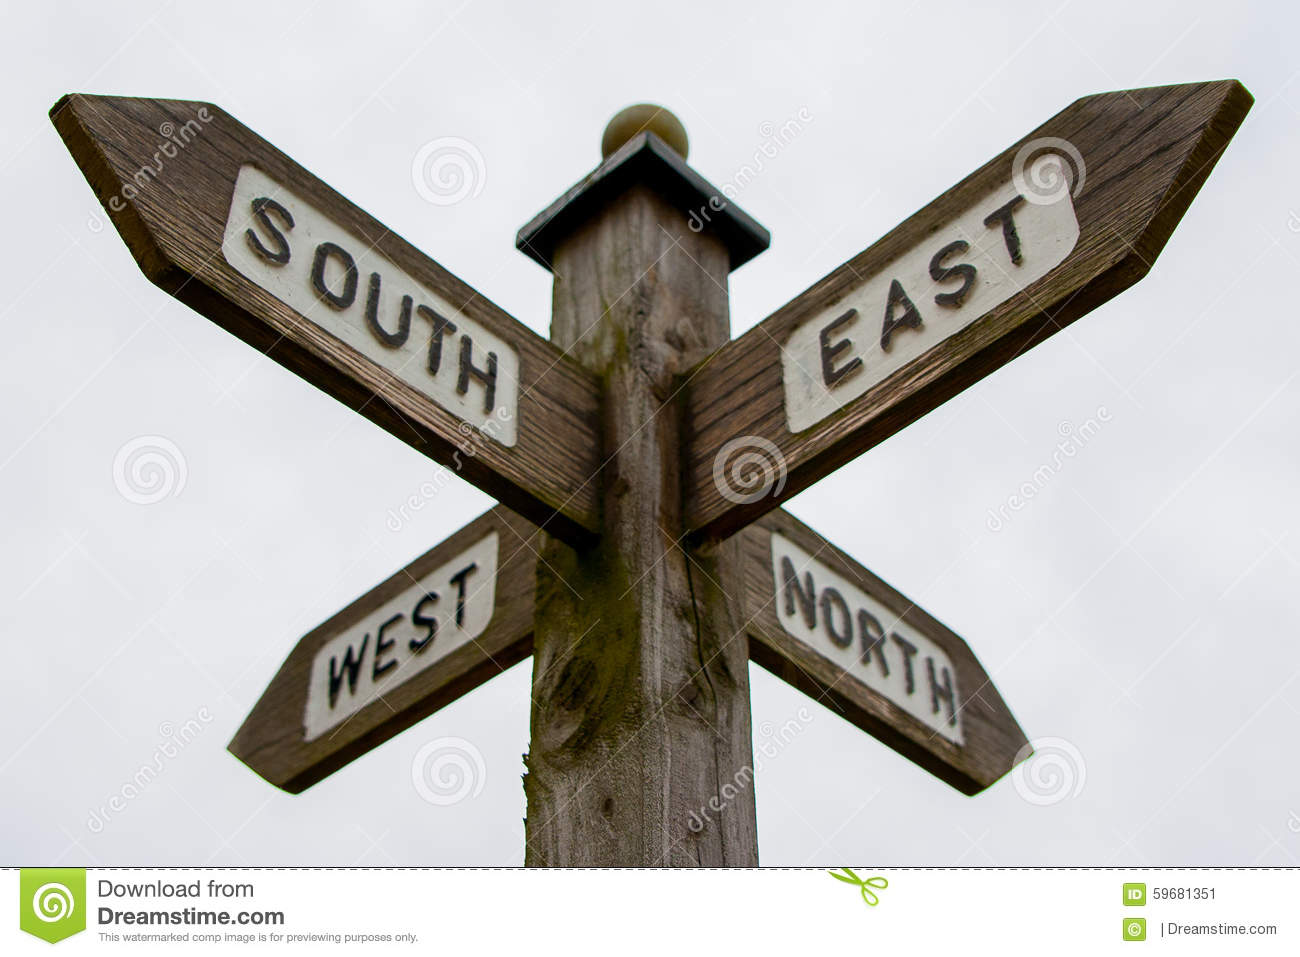 north south east west signpost stock image image of compass east